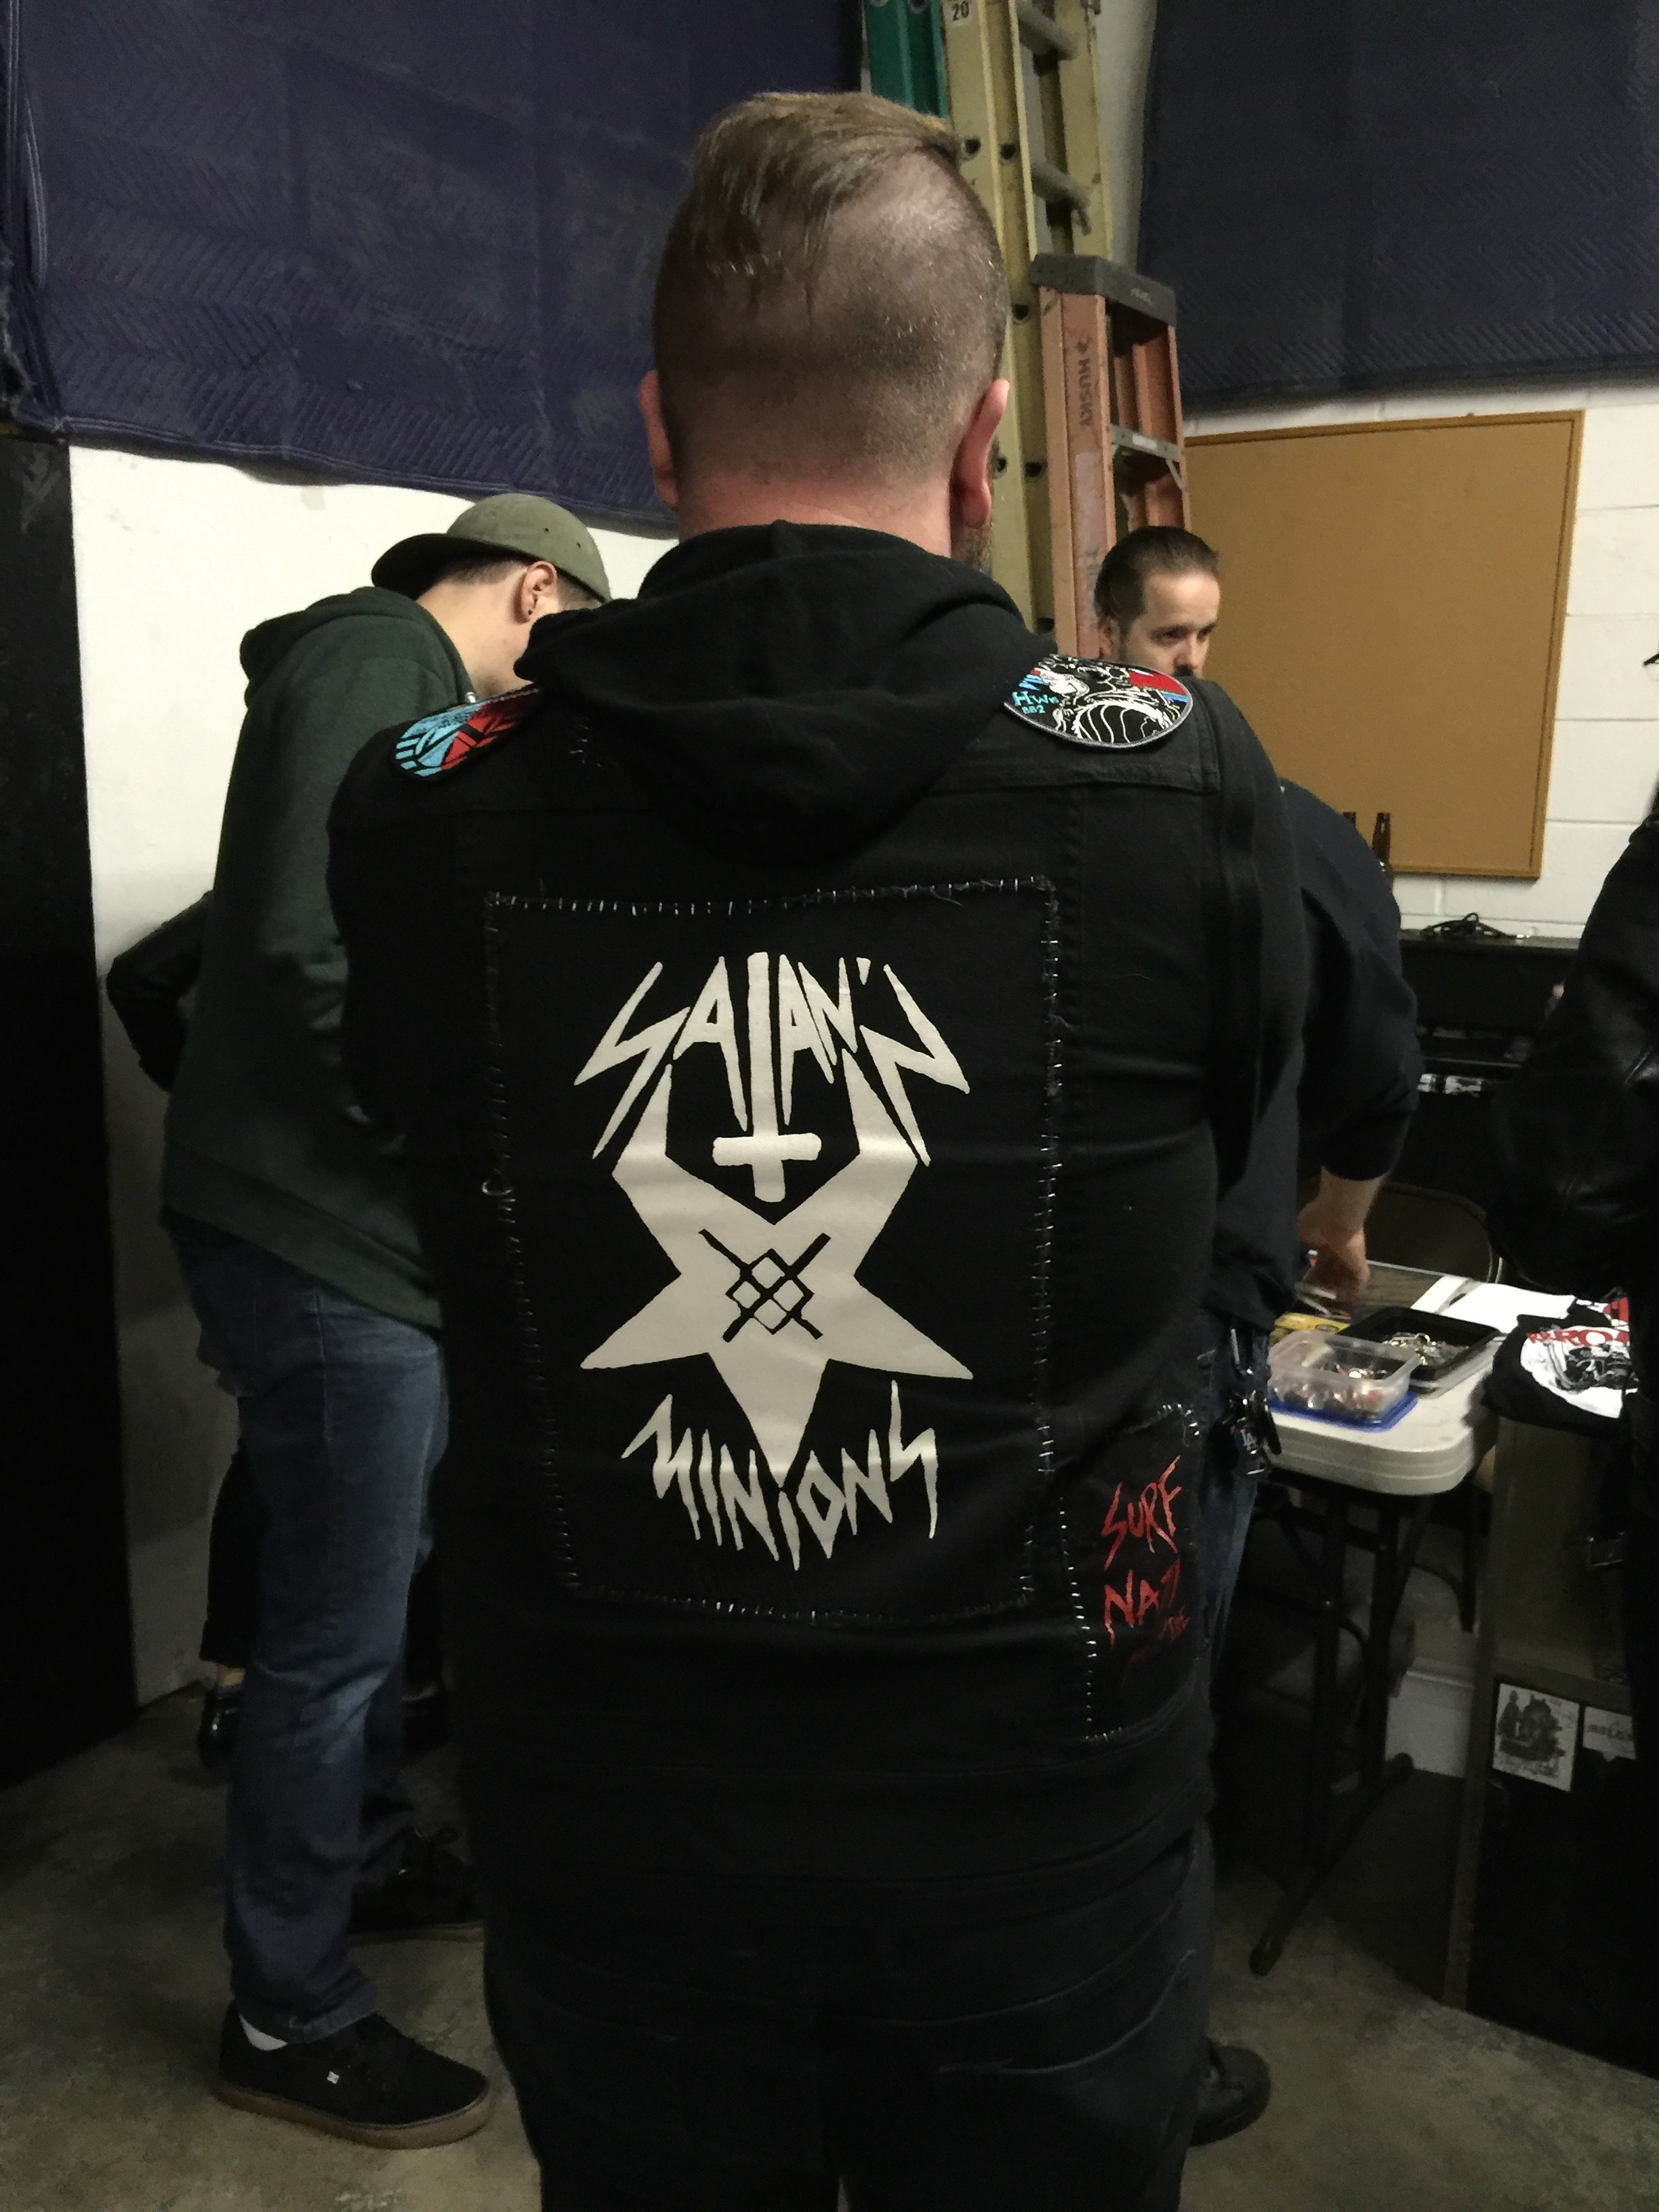 Tom K. was also sporting his homemade Satan'z Minions patch!!